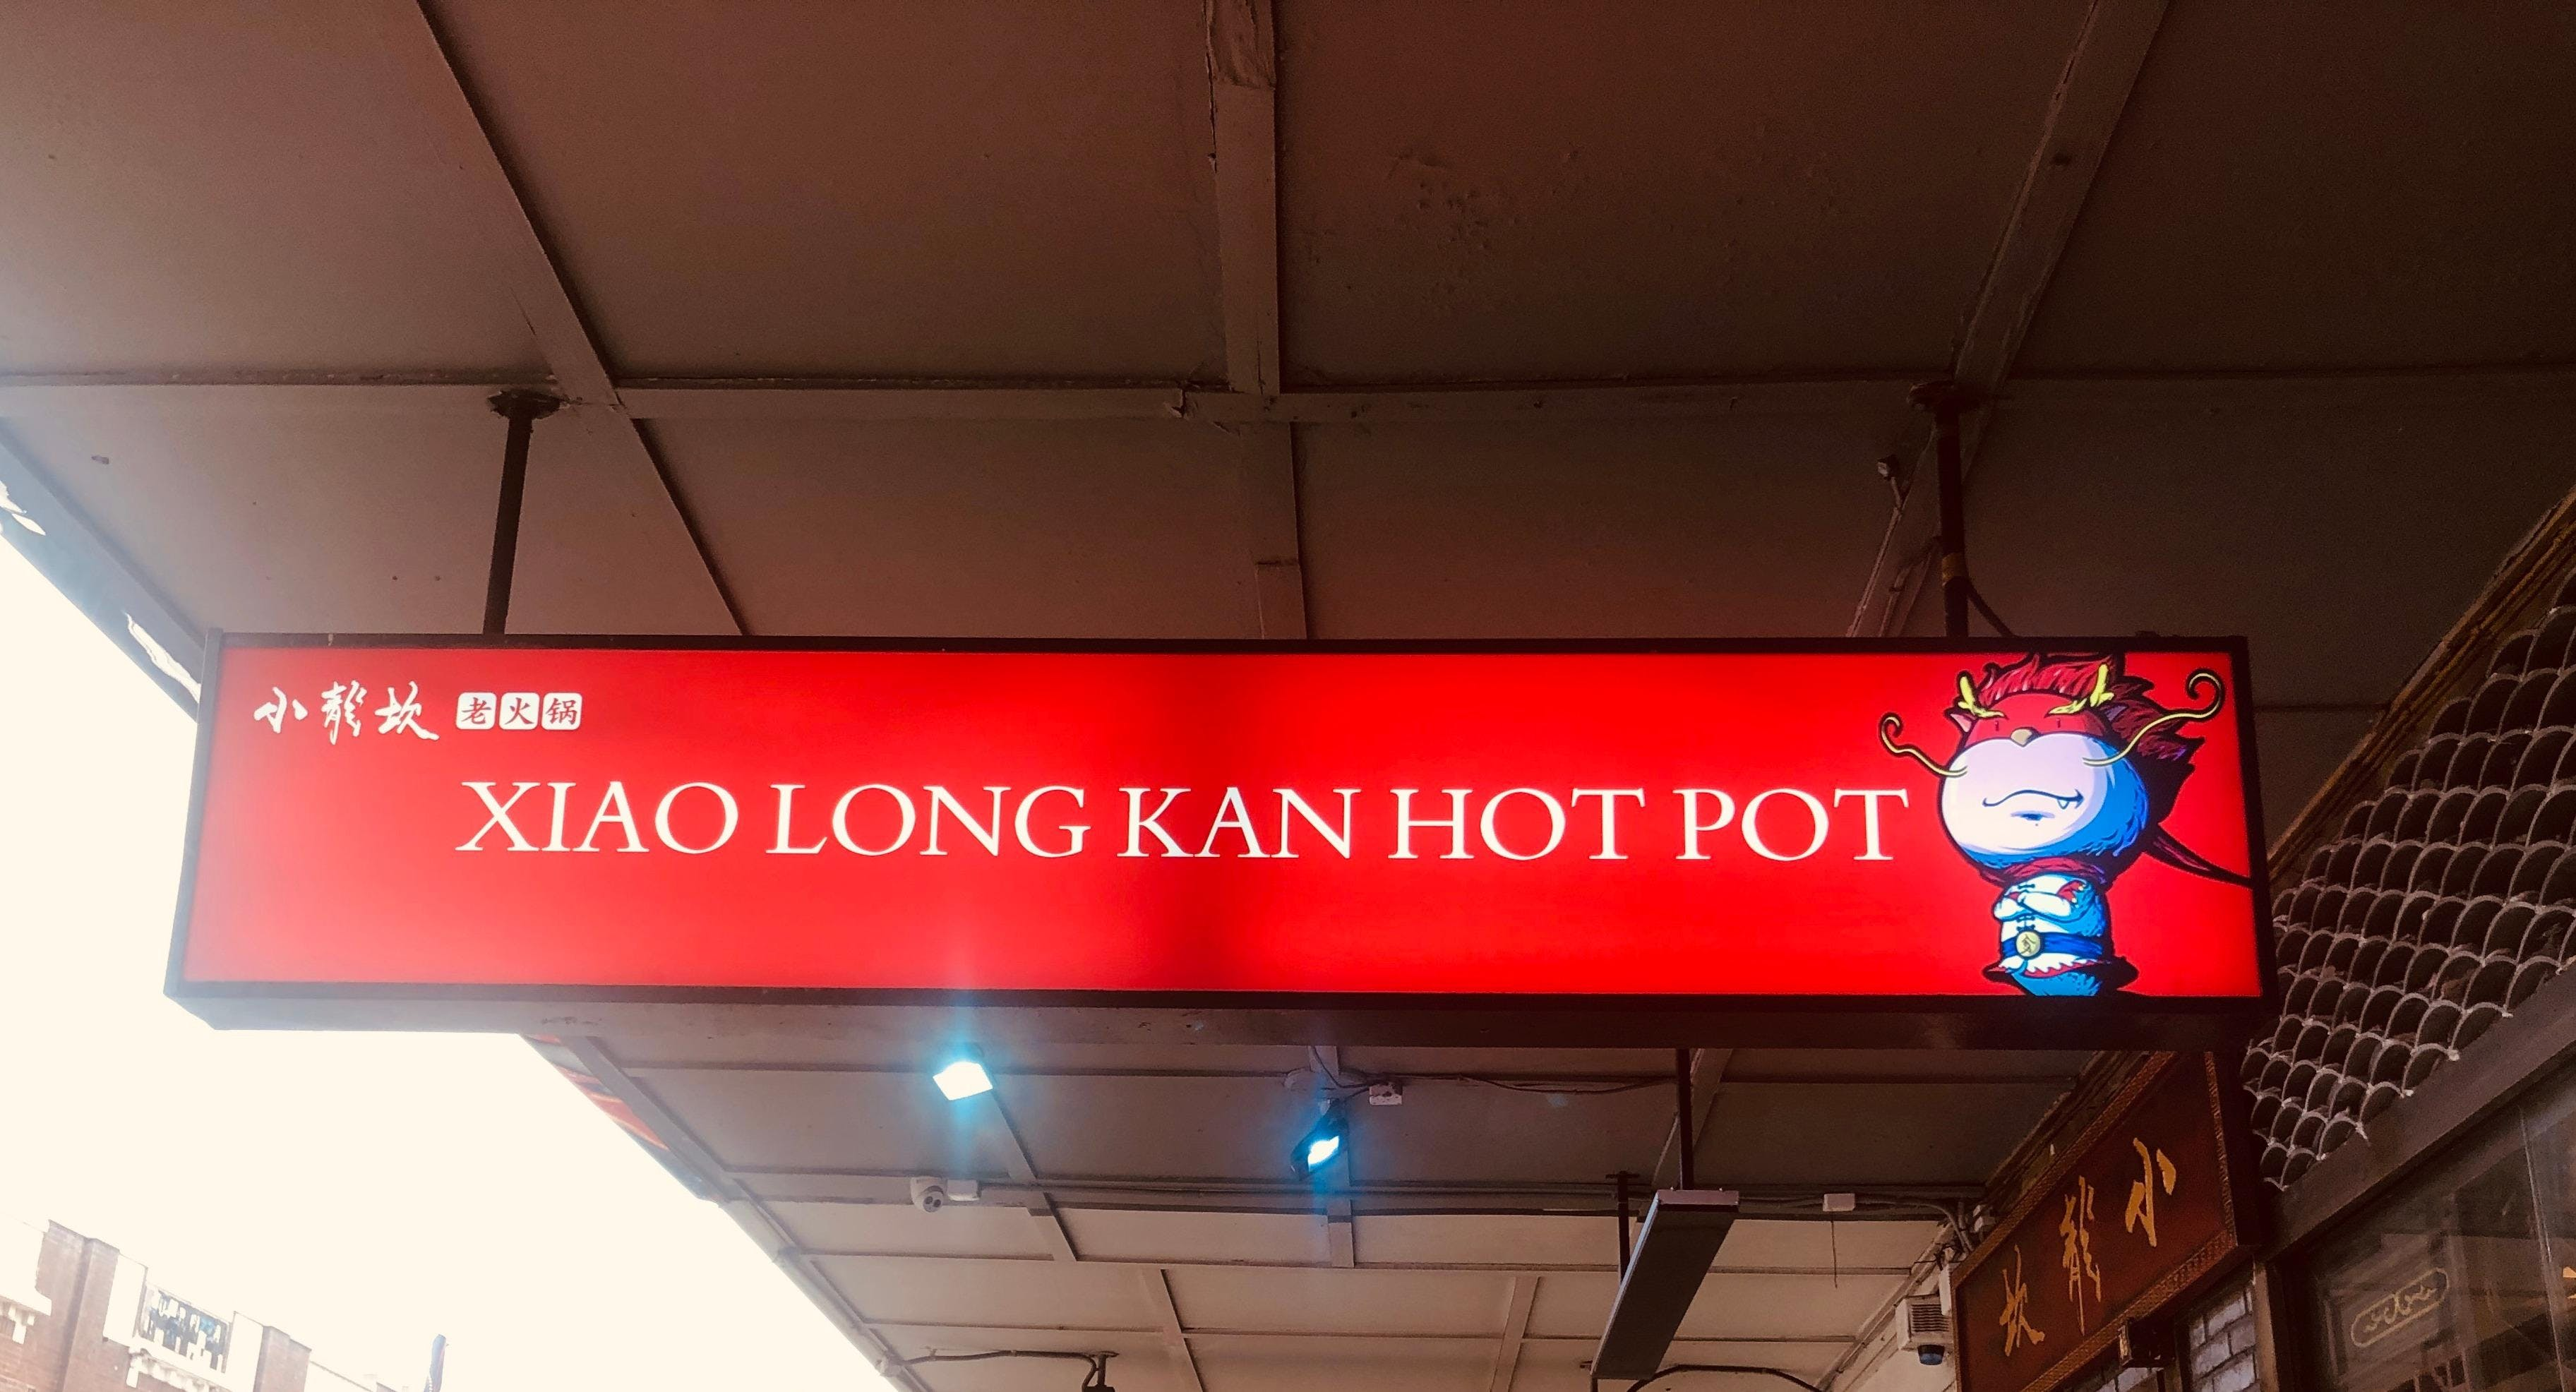 Xiao Long Kan Hotpot Burwood 小龙坎老火锅